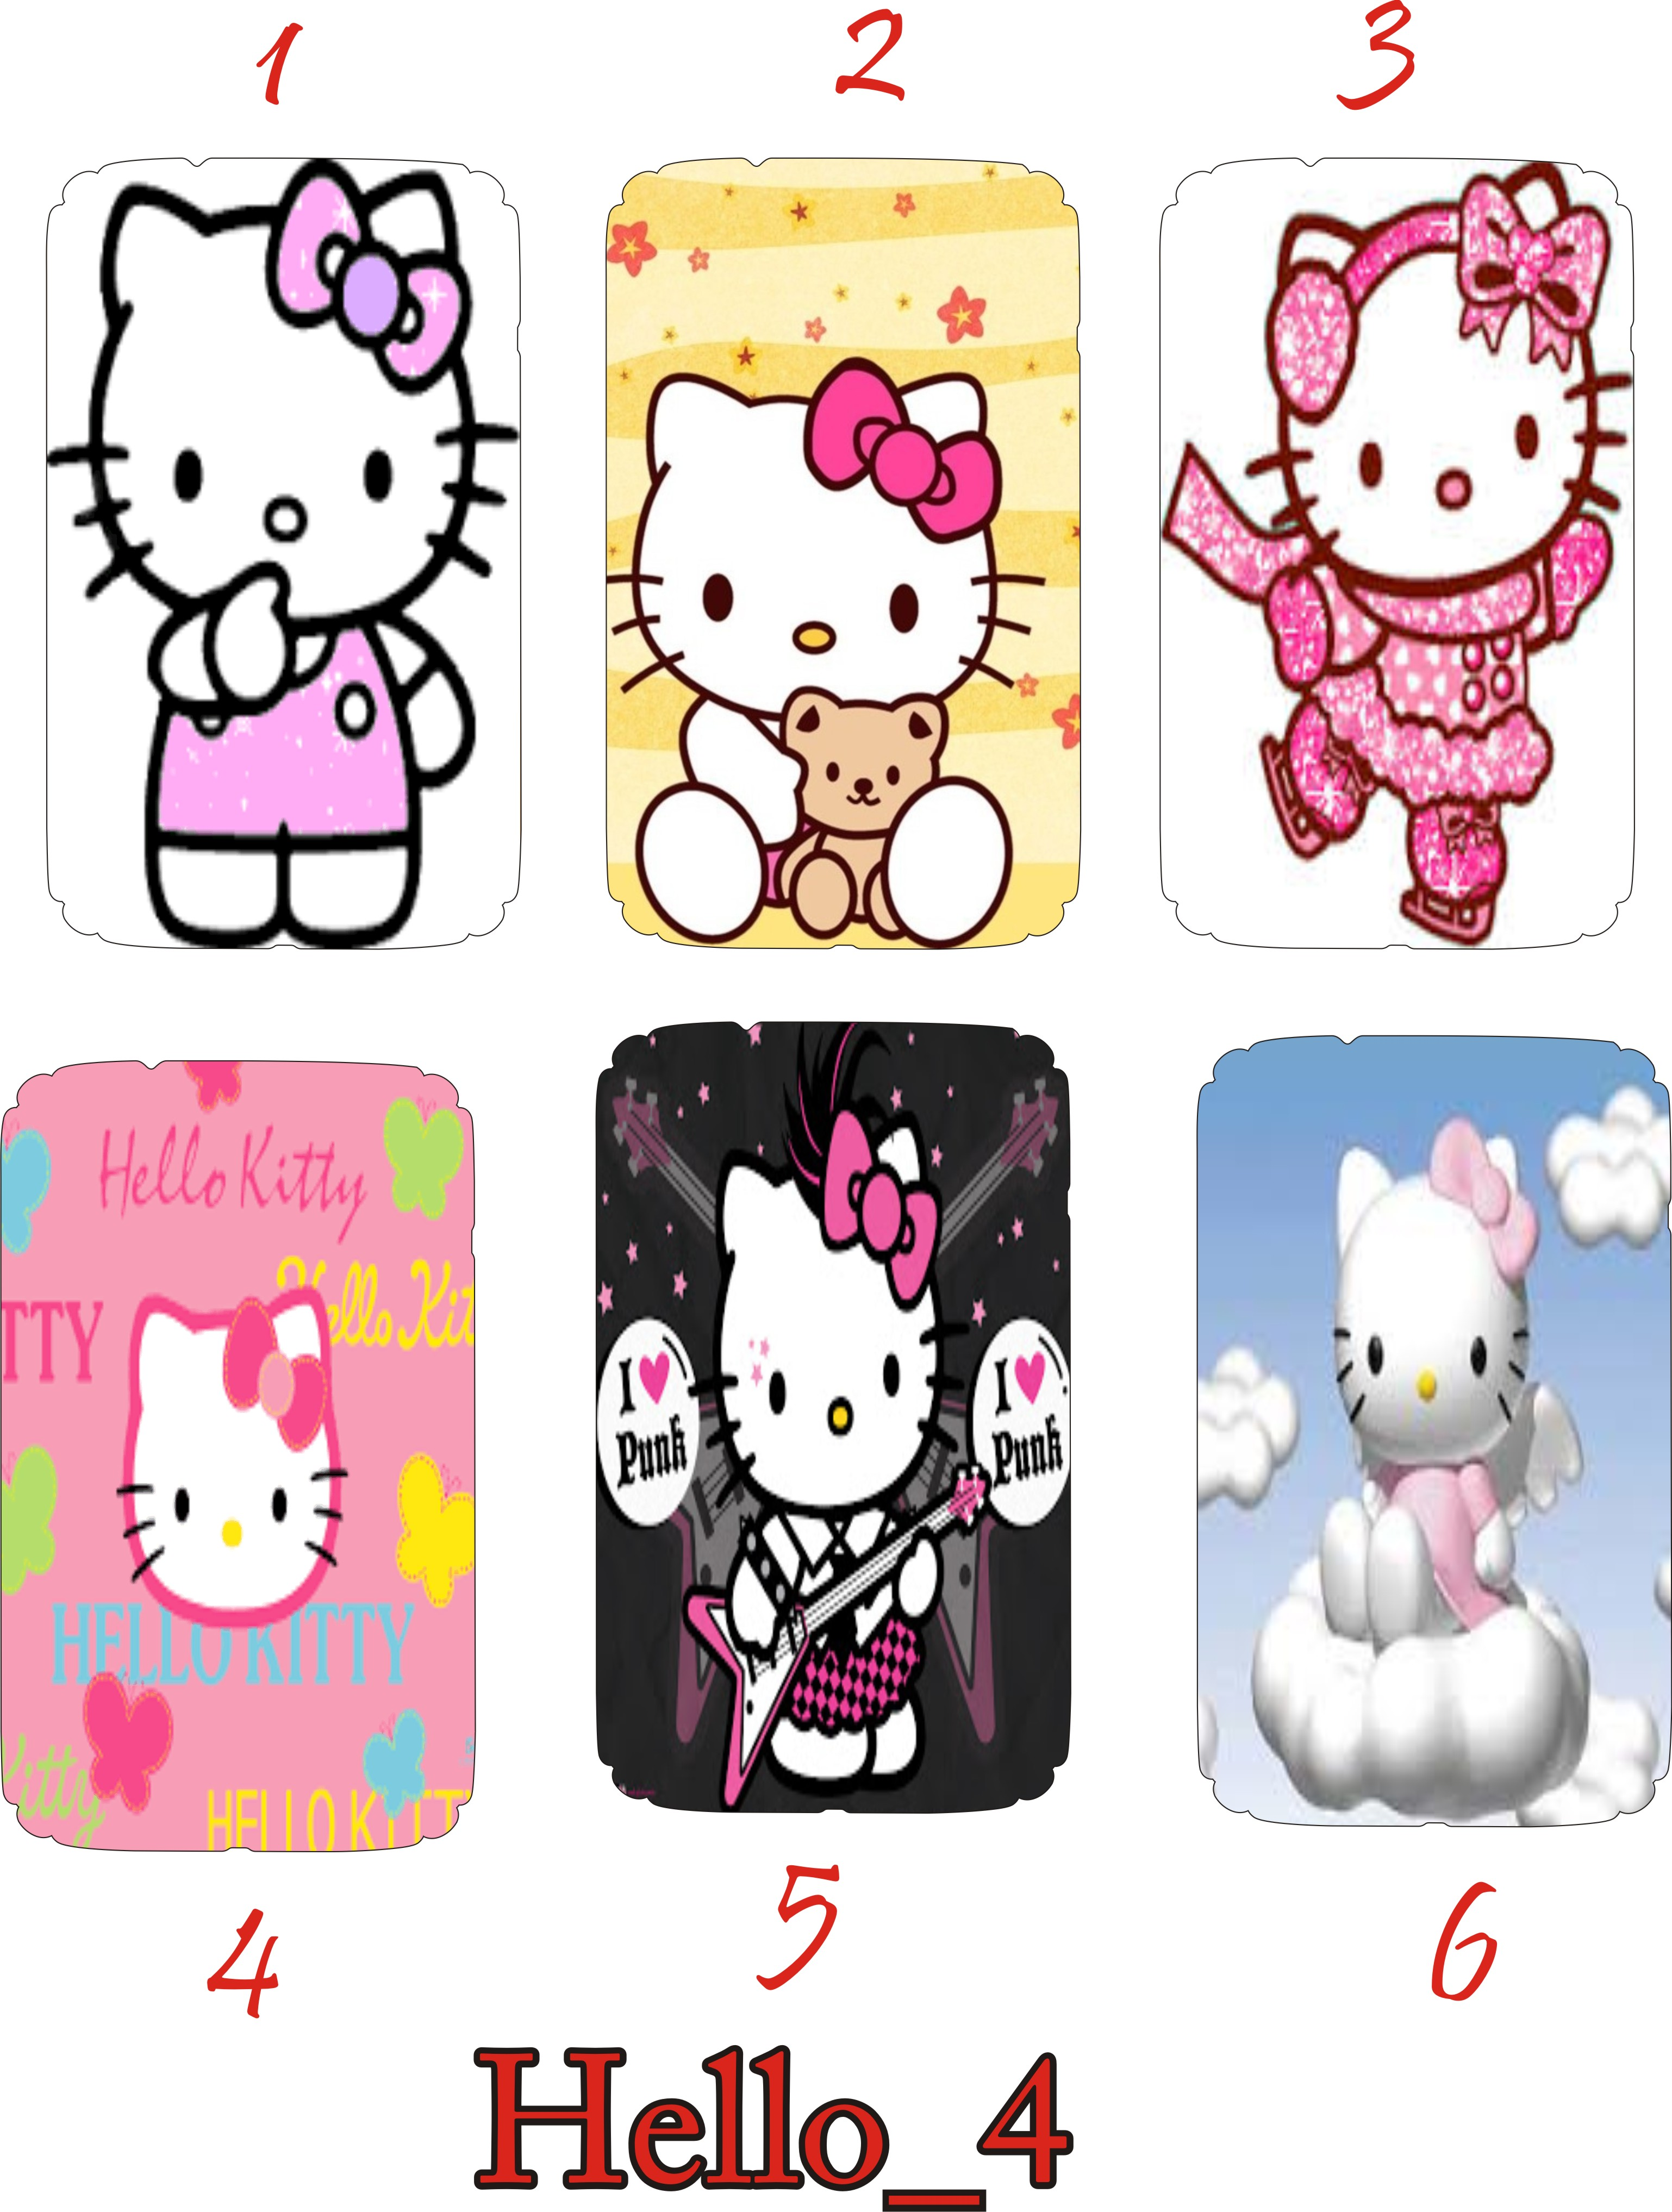 Gambar Wallpaper Hello Kitty Untuk Hp Android Terlengkap Gasebo Wallpaper